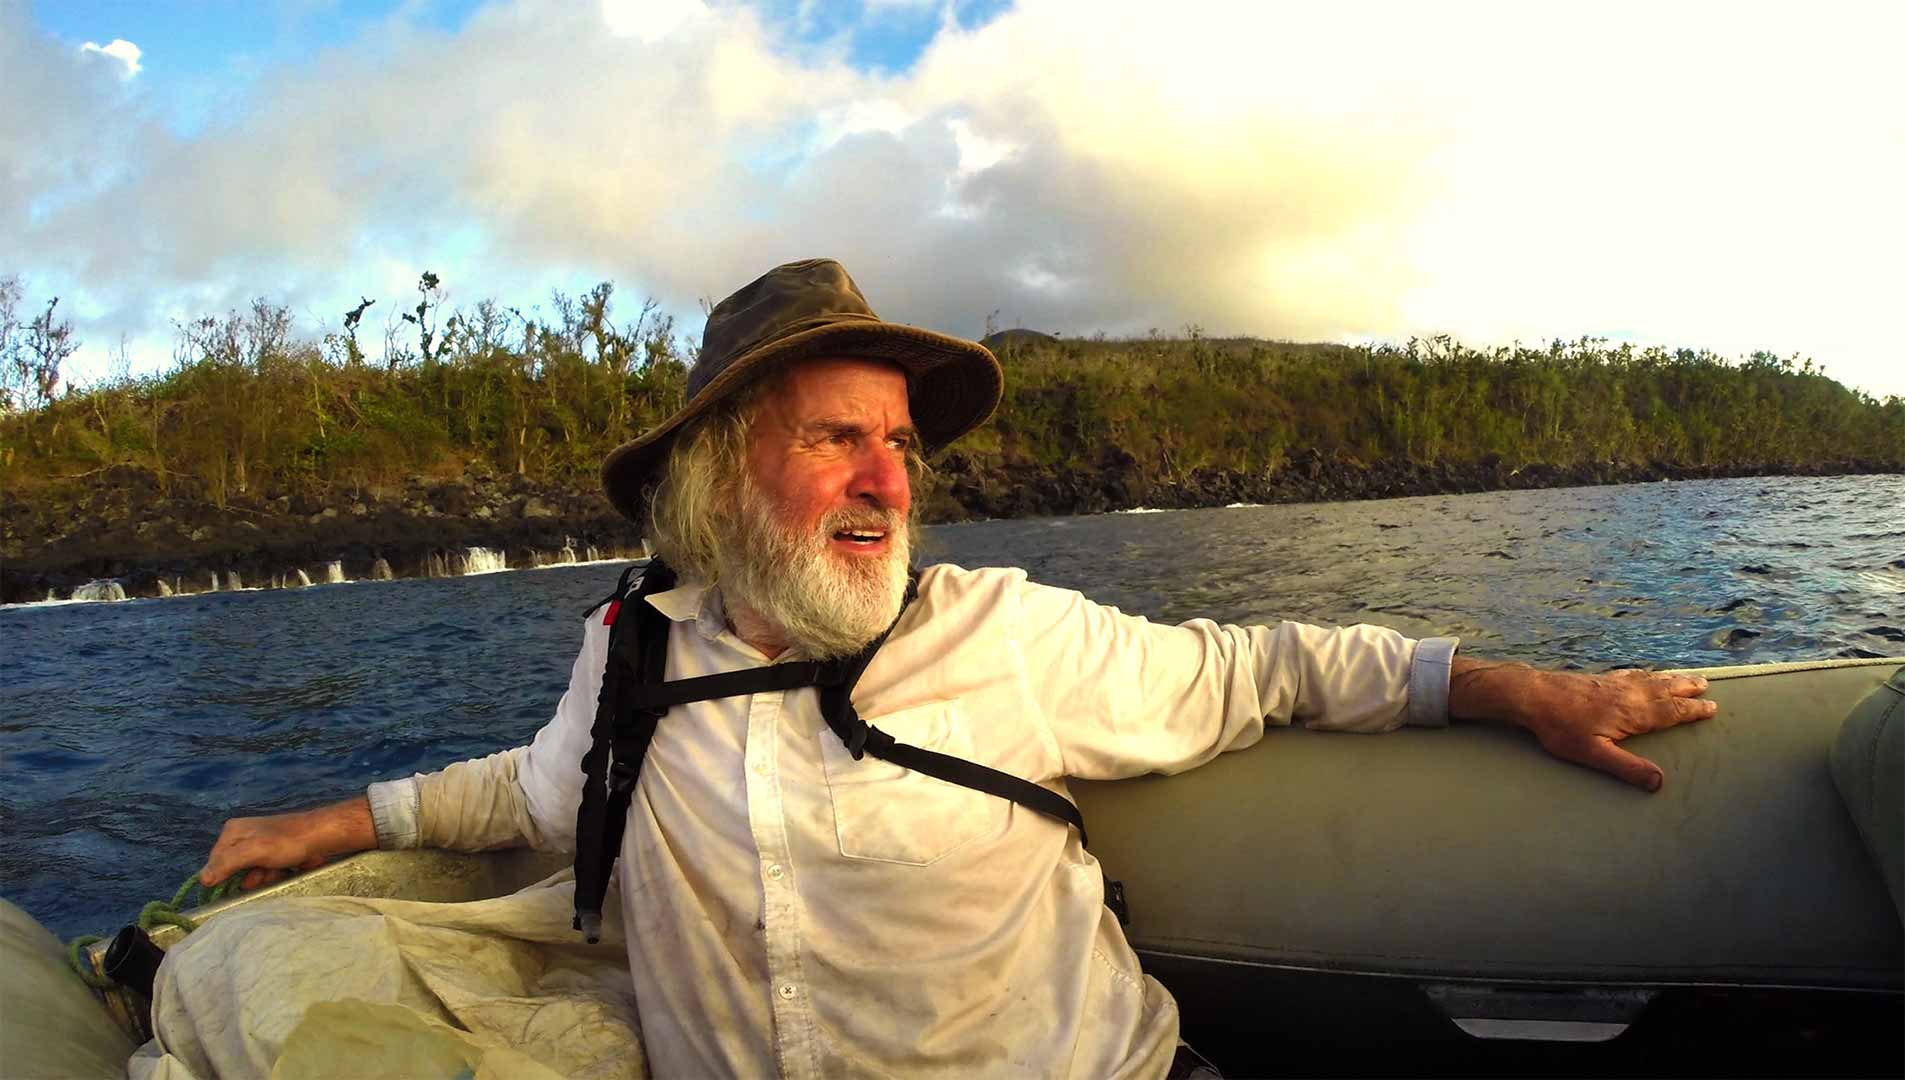 Ian Argus Stuart, One of our castaways arriving to the desert islands that we have in Oceania